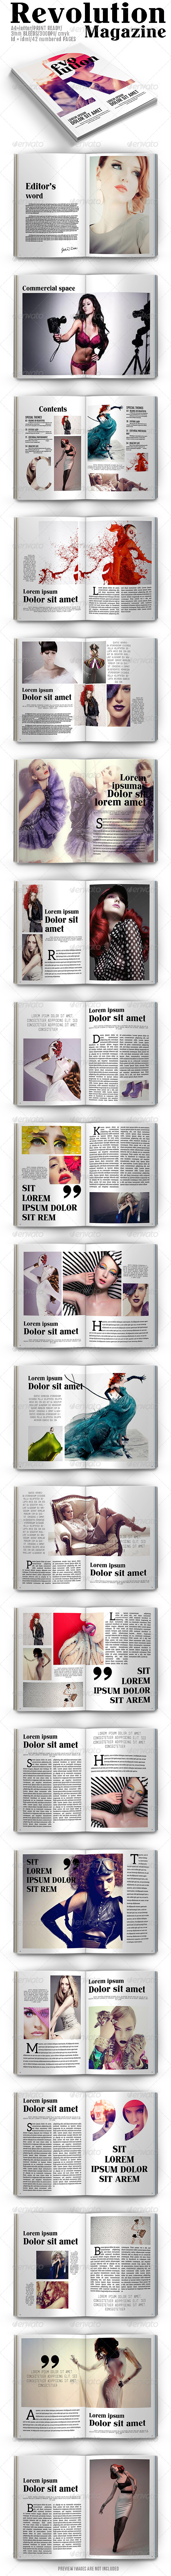 GraphicRiver Revolution Magazine 7864642